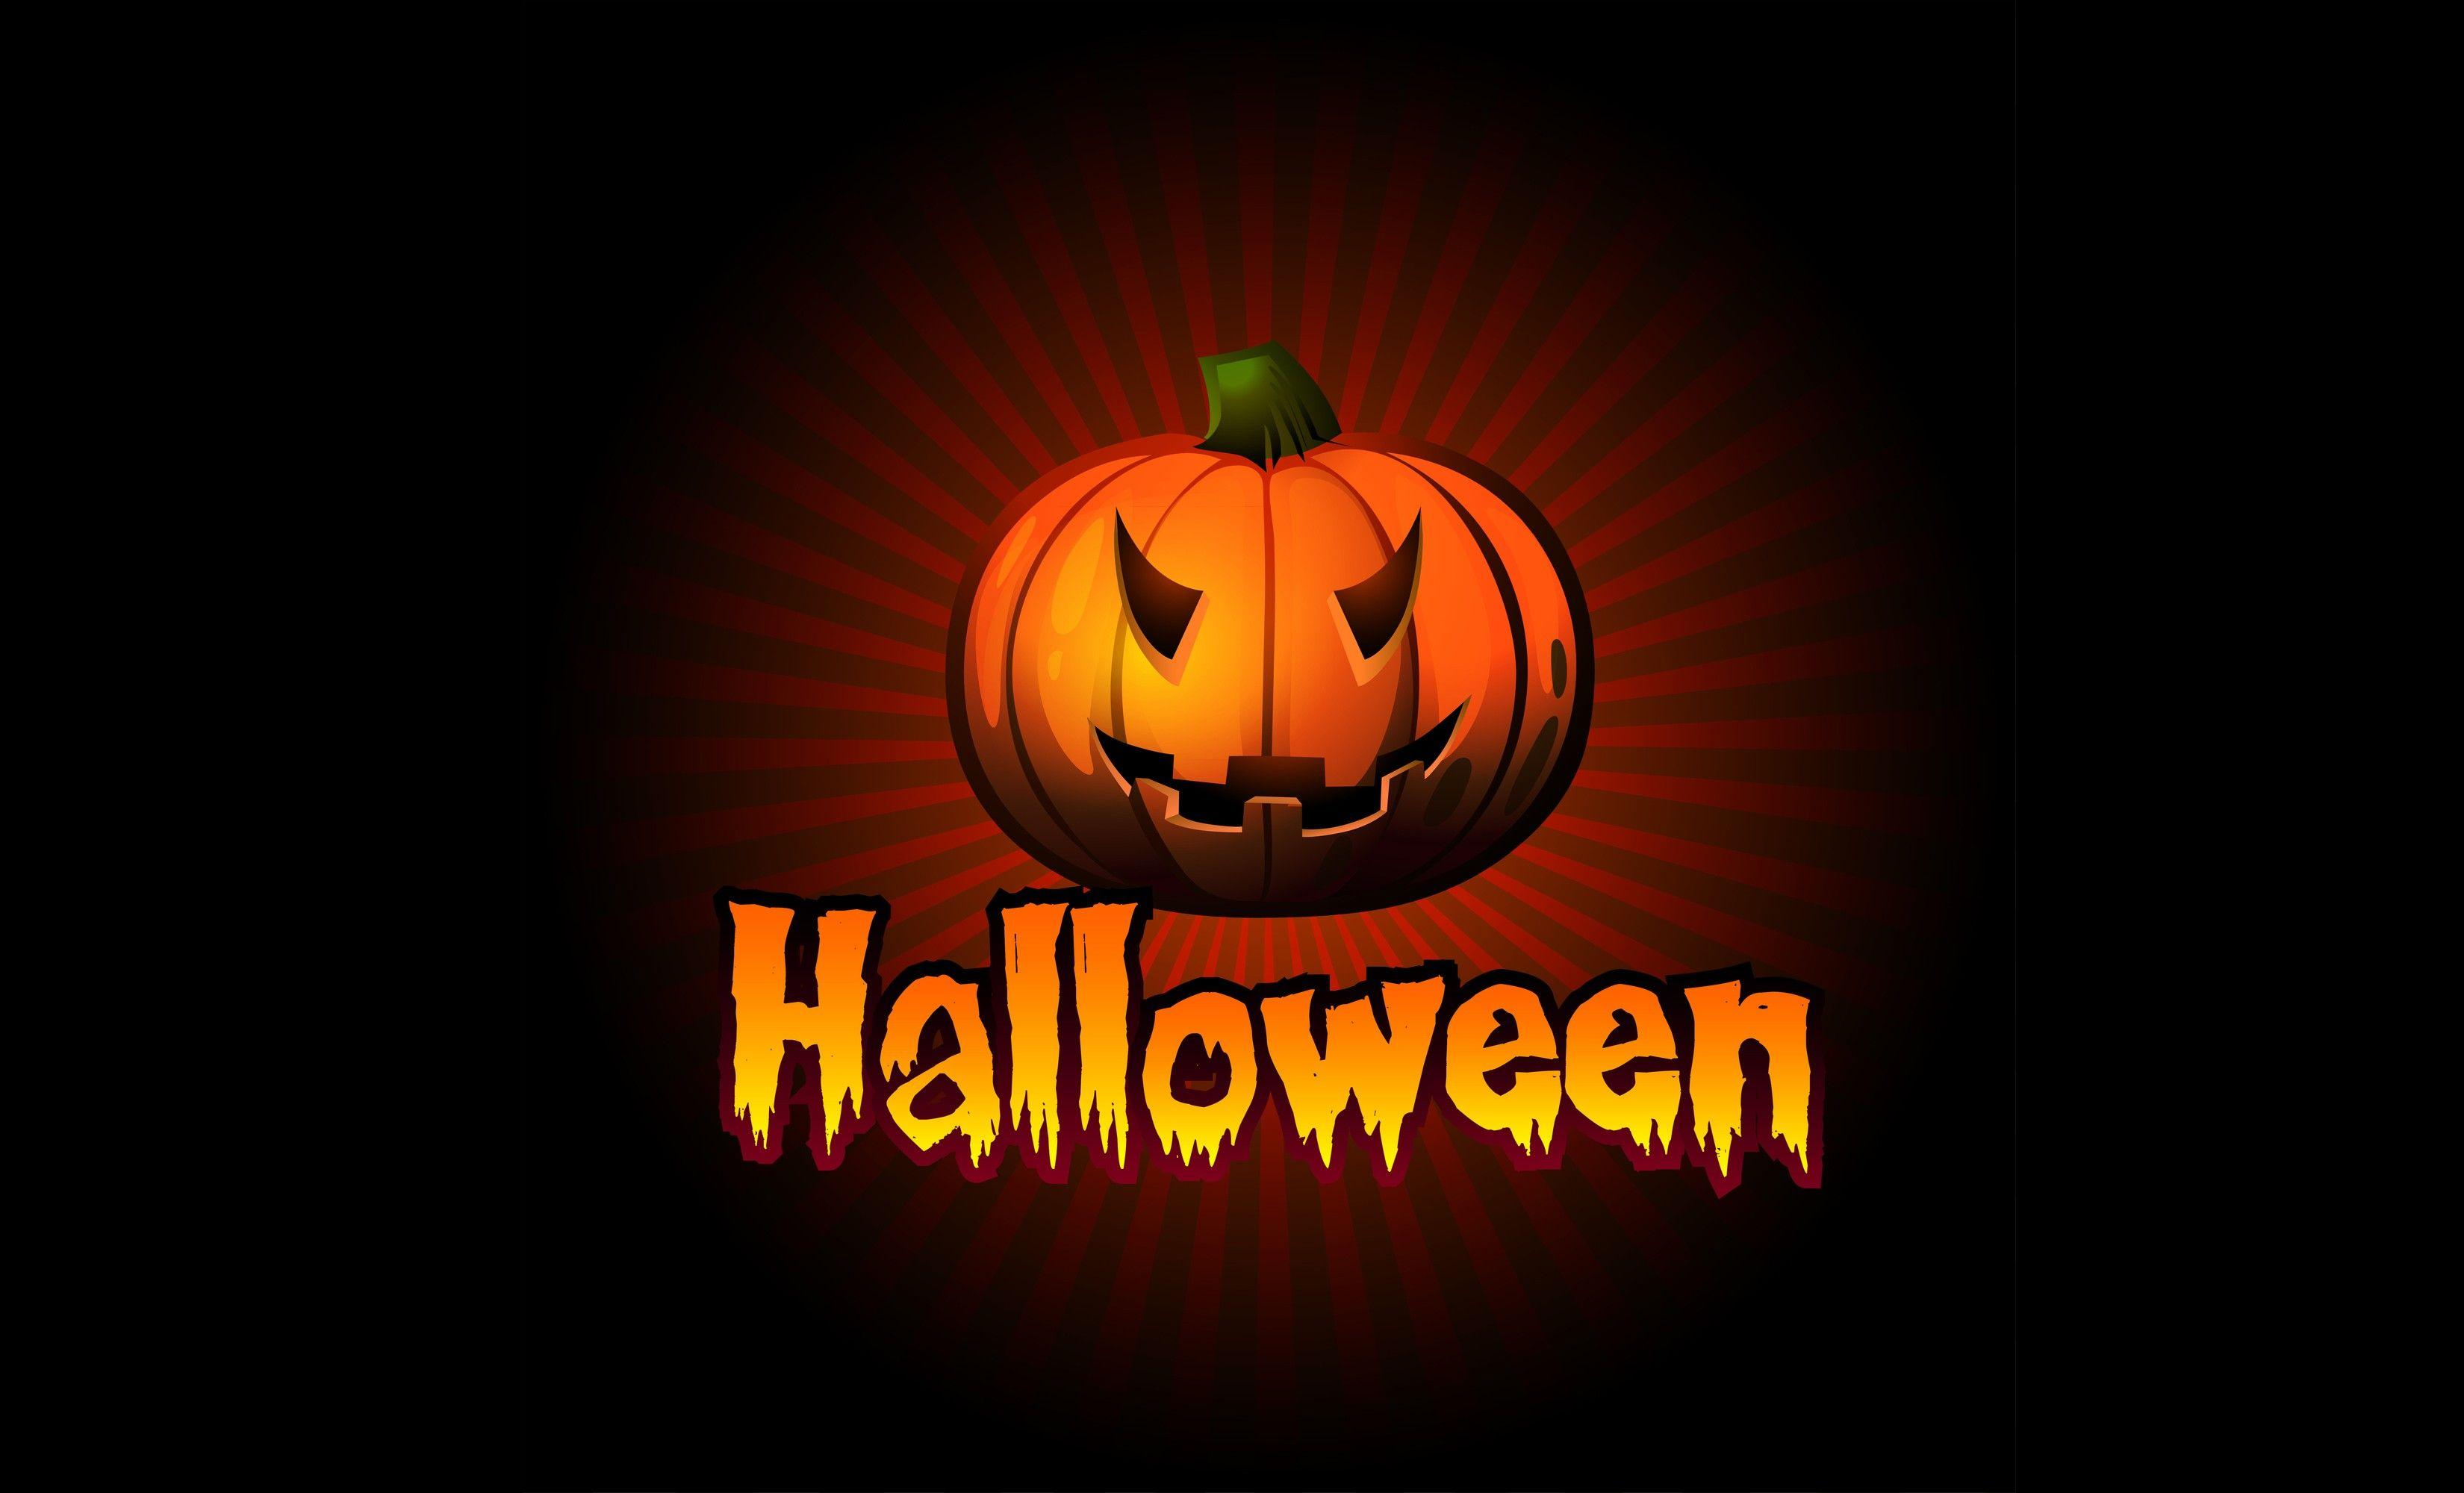 Happy Halloween Pumpkin Wallpapers Hd Free Download 36648 Label